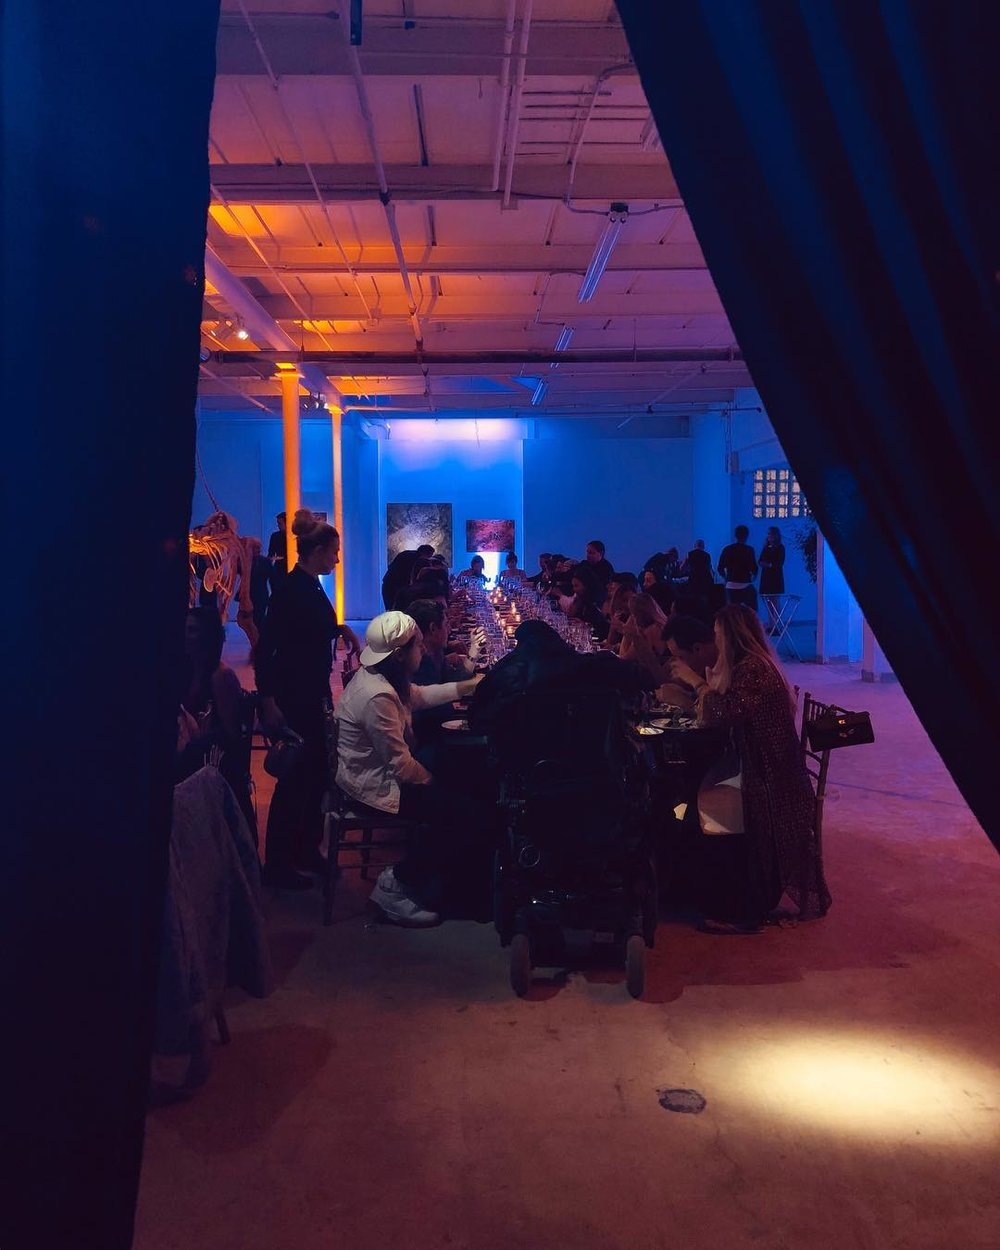 Miami Wynwood Corporate Industrial Warehouse Dinner